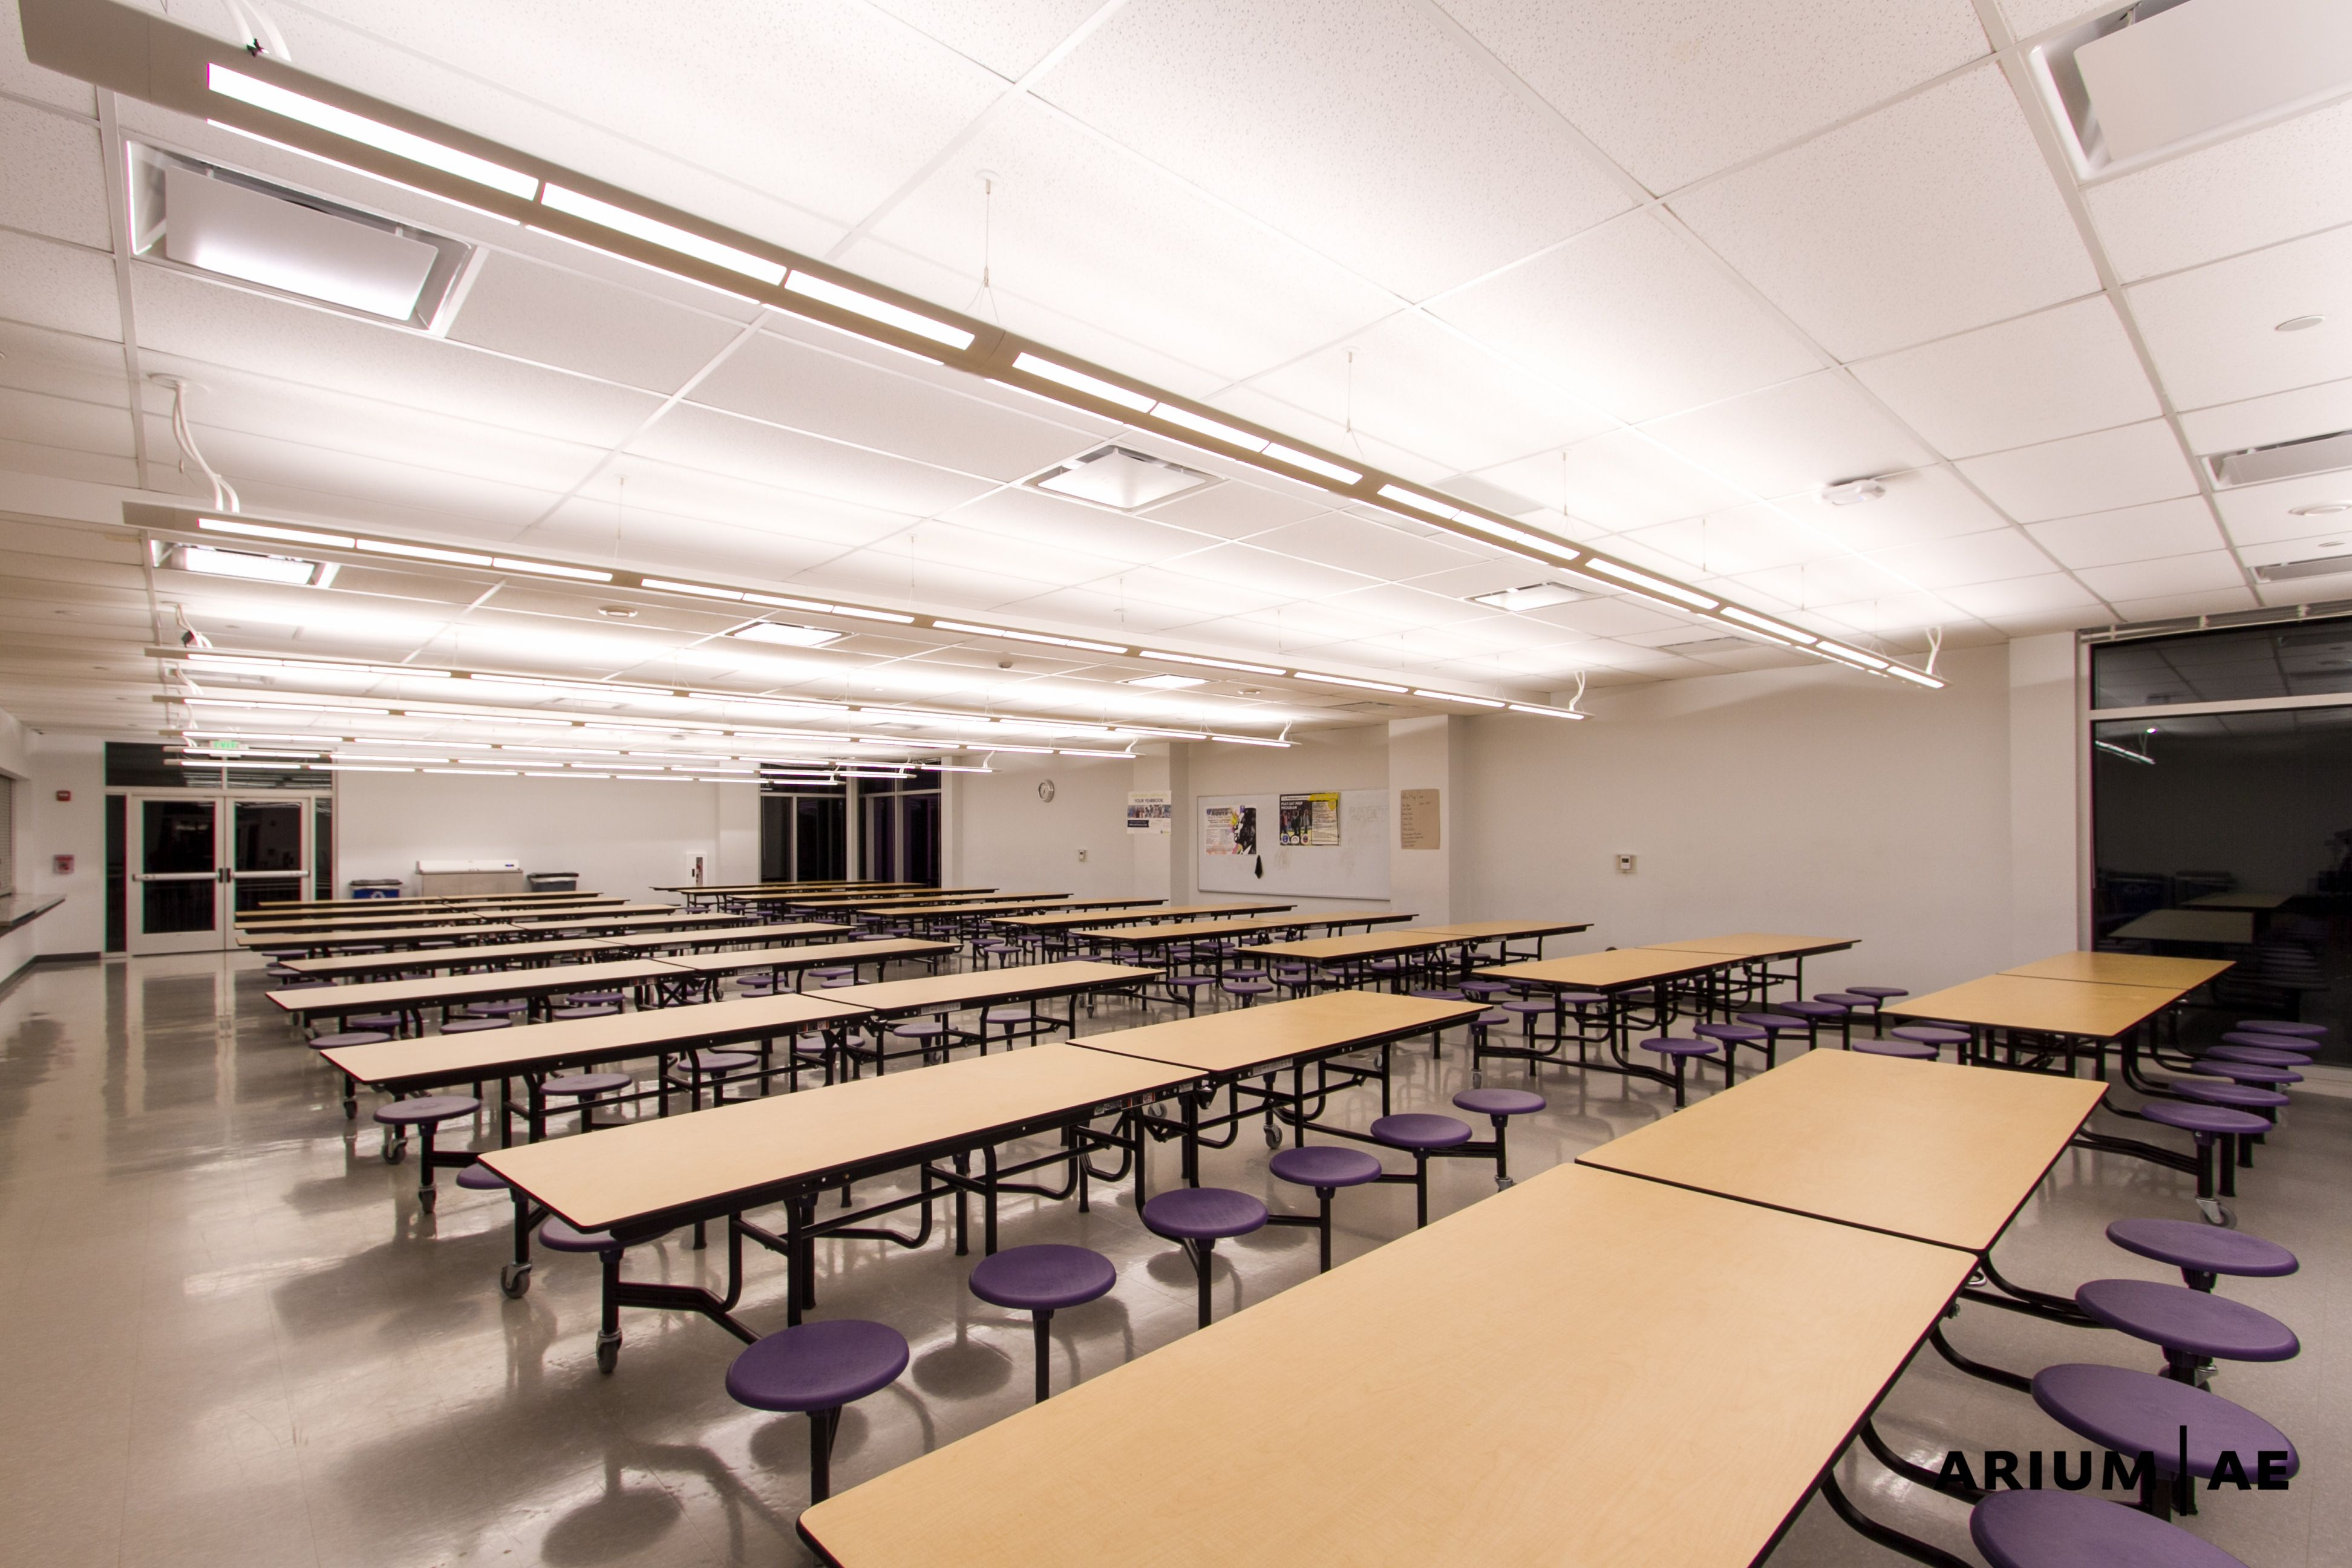 High school cafeteria, storefront, lighting, seating